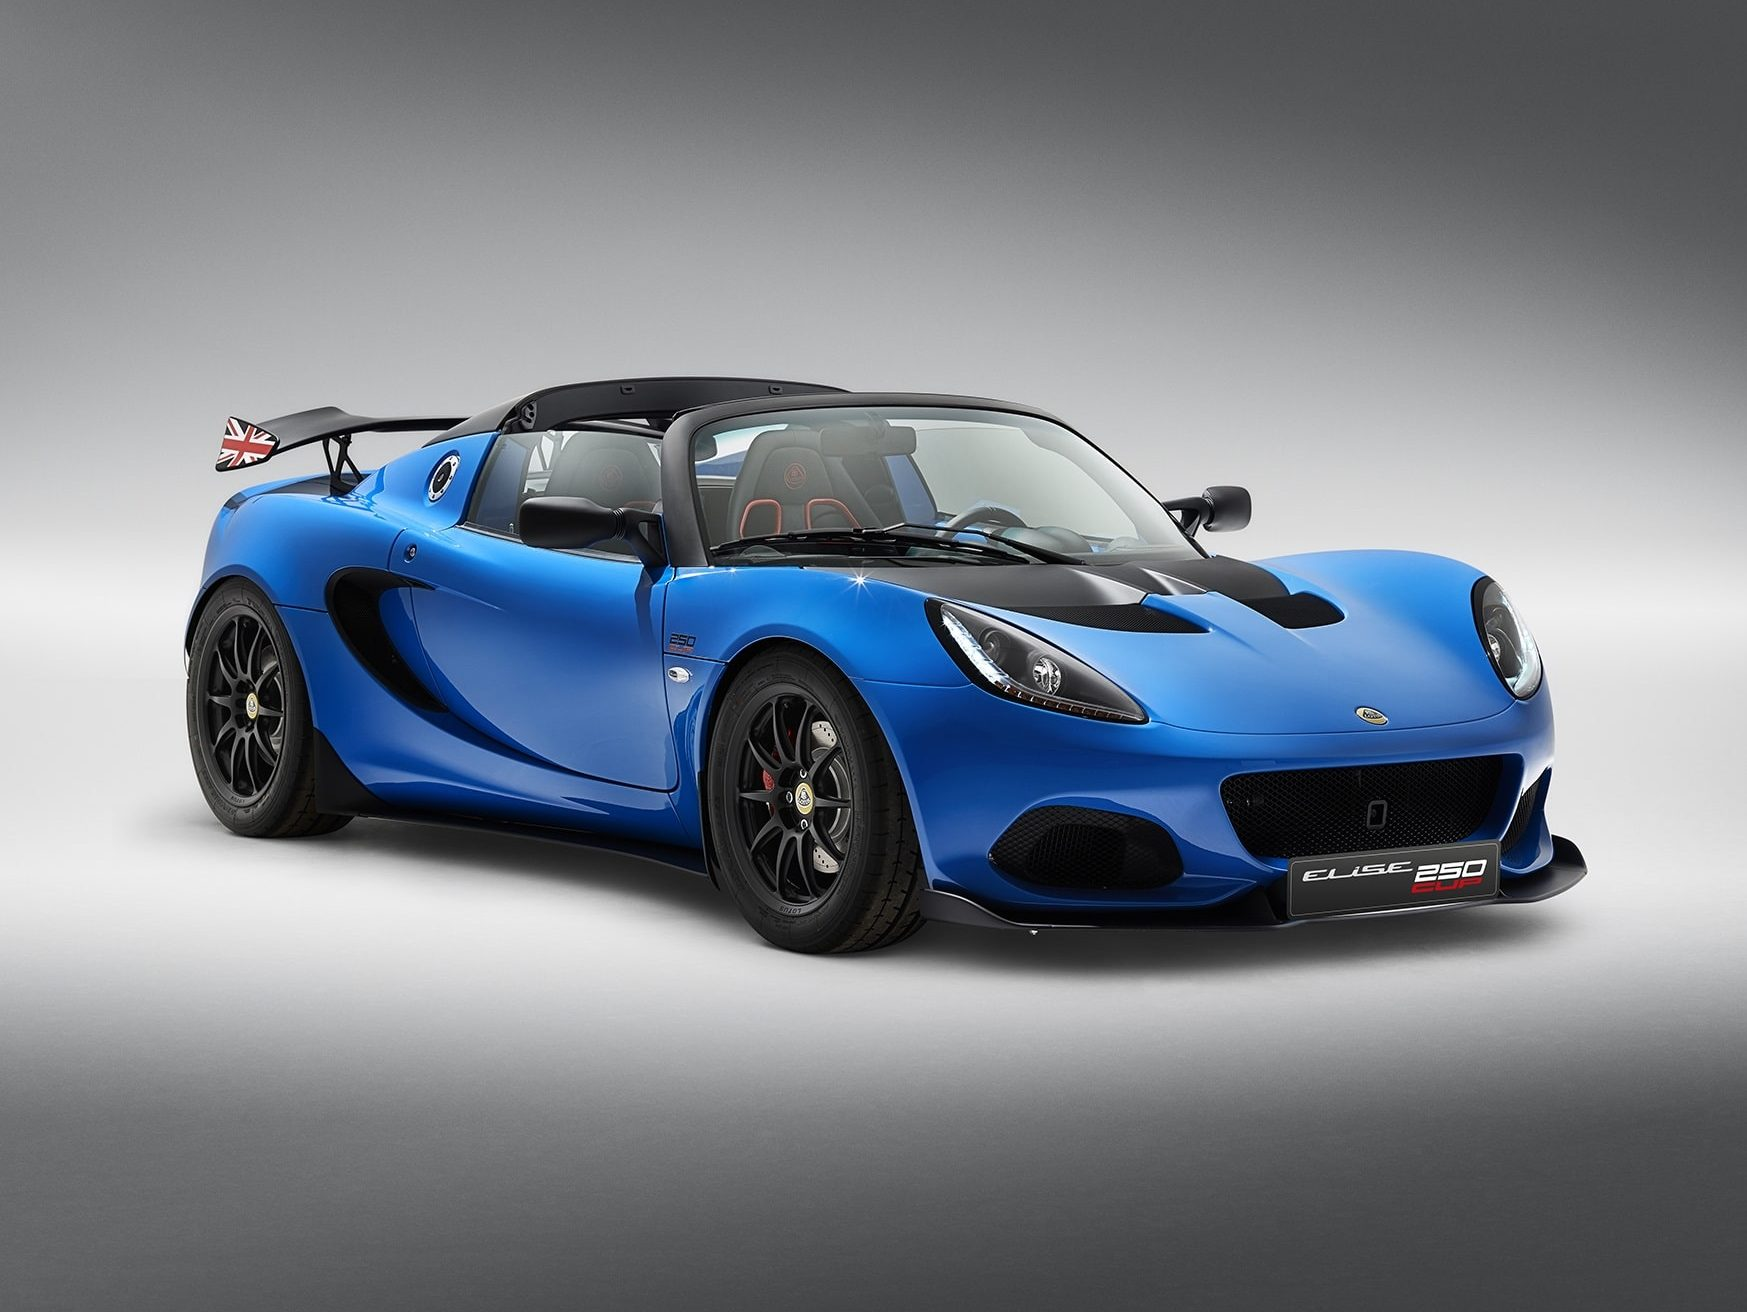 Lotus Elise Cup 250 - Bauden racing cars